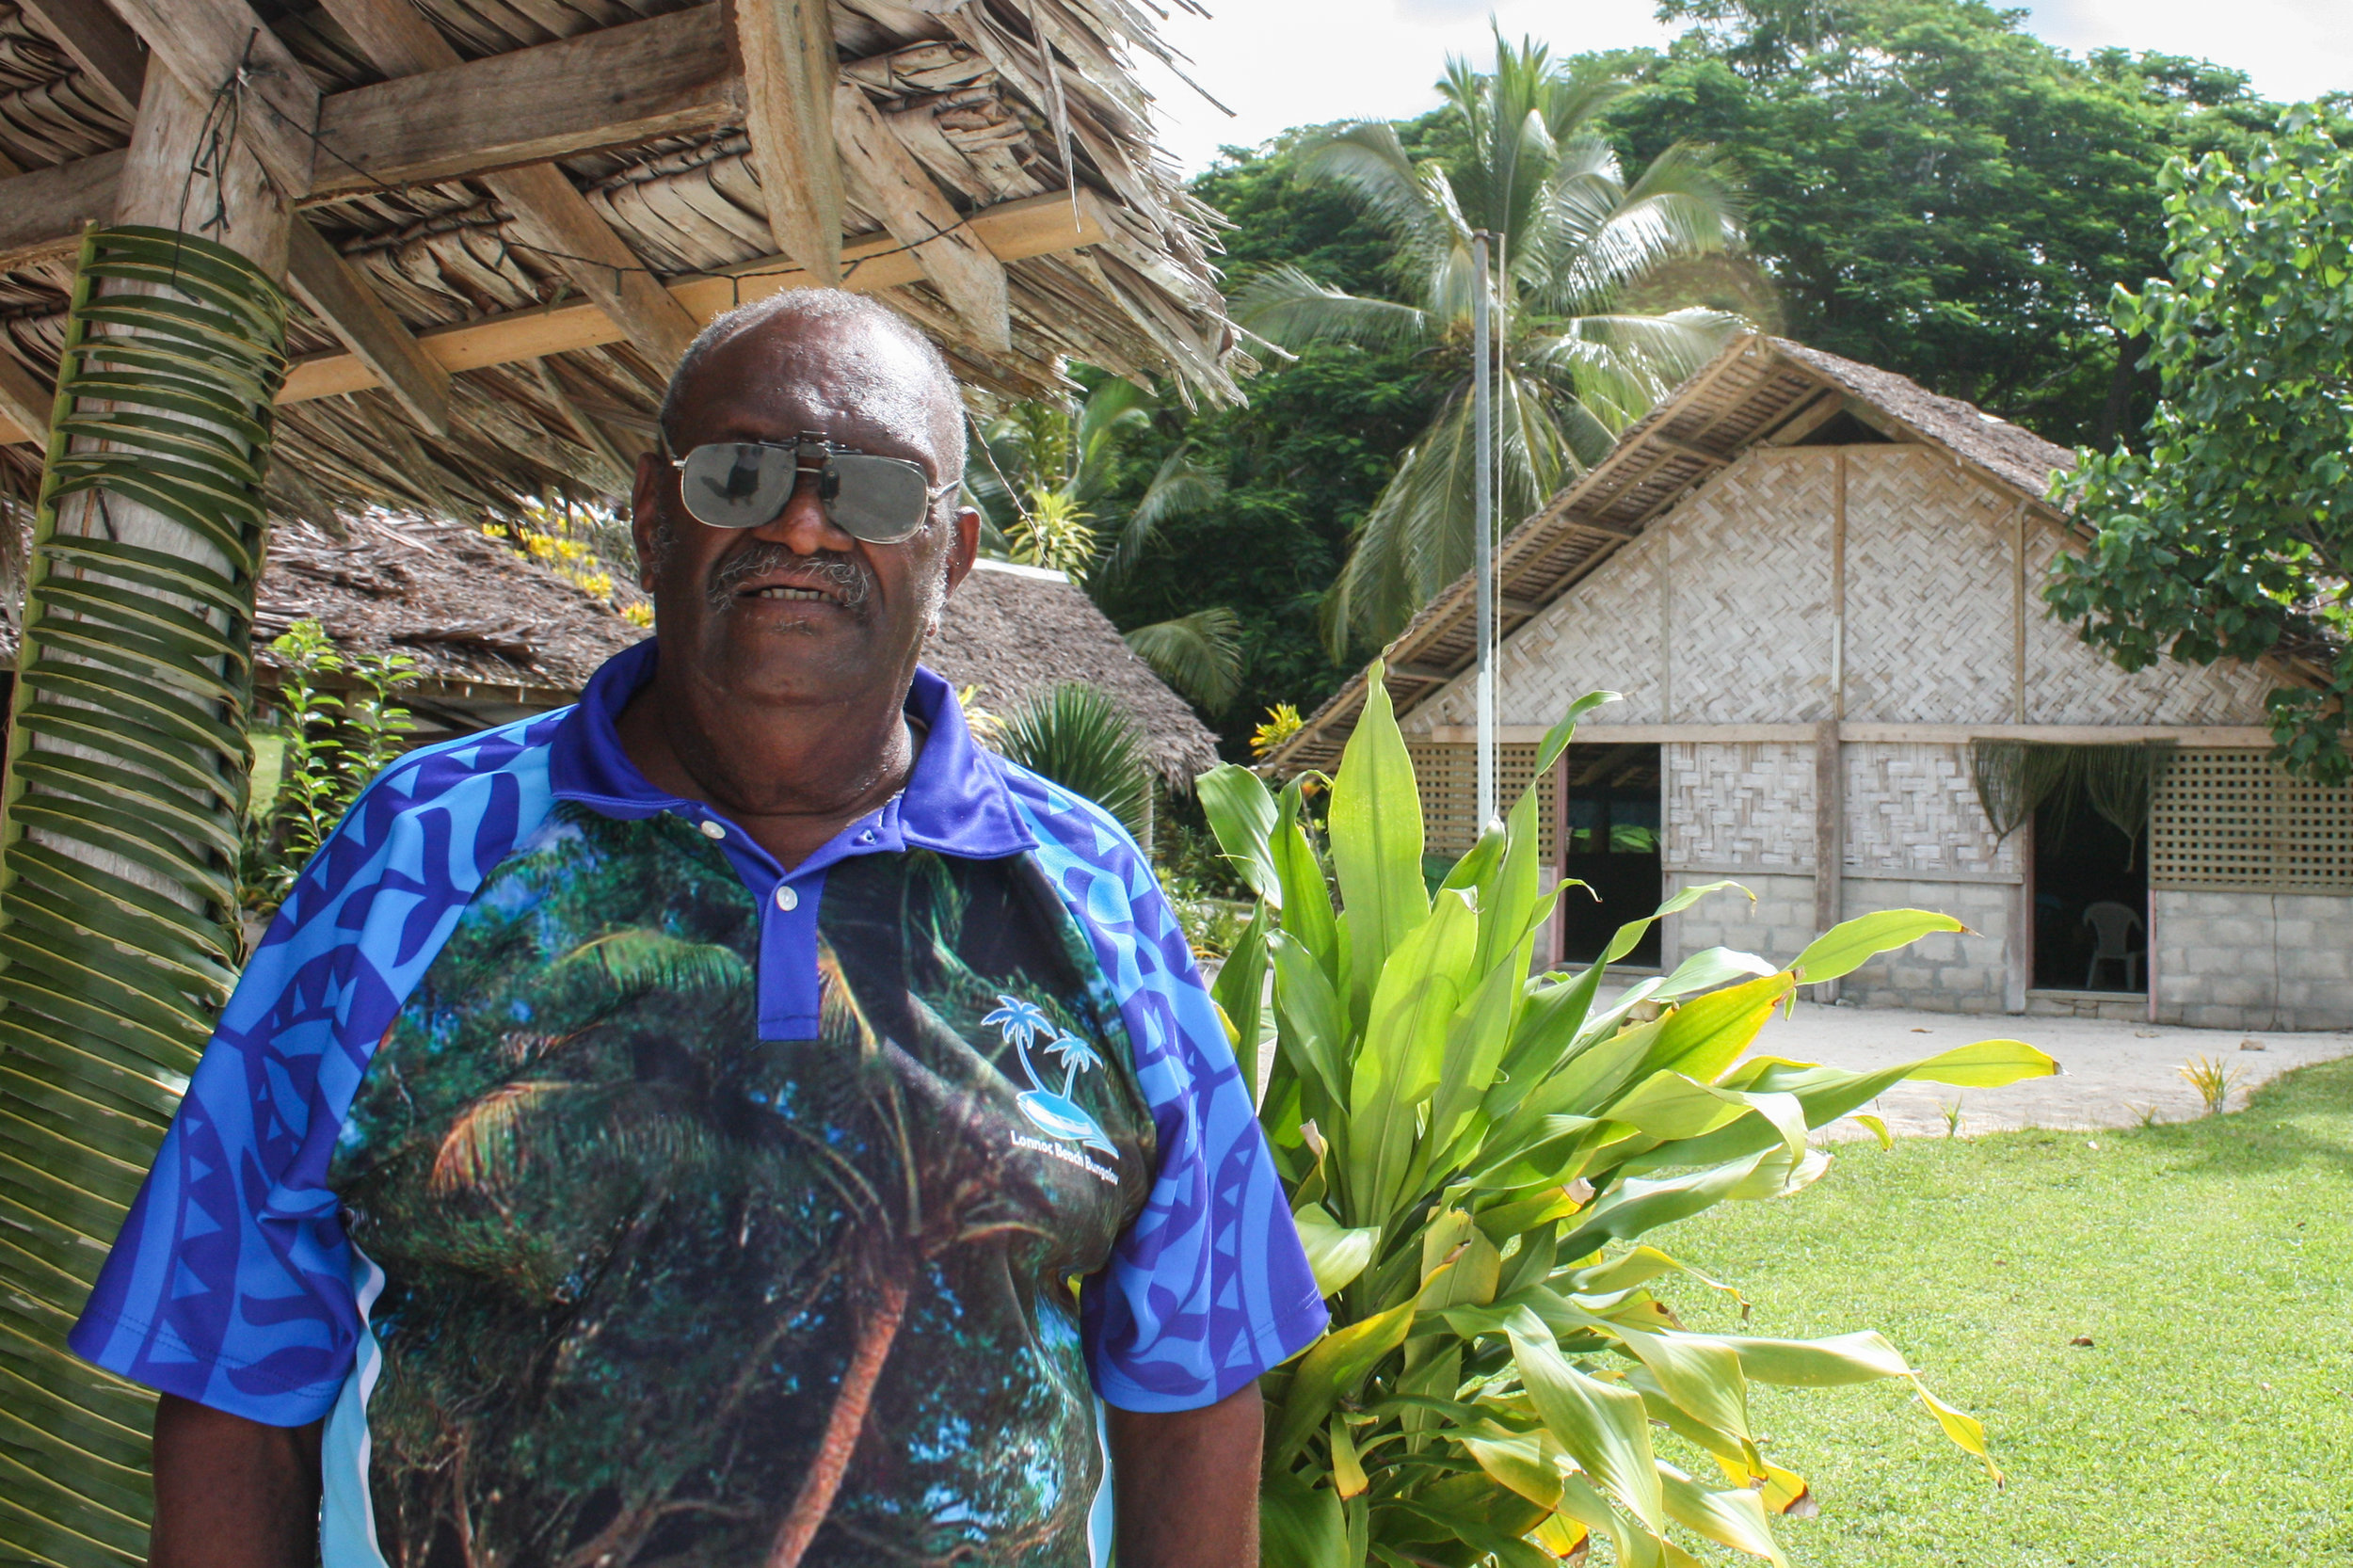 As a long time business owner, I am glad of Santo.Travel's development. Without them many businesses couldn't access the world. - Kalmer, Lonnoc Beach Bungalow (Member since 2014)